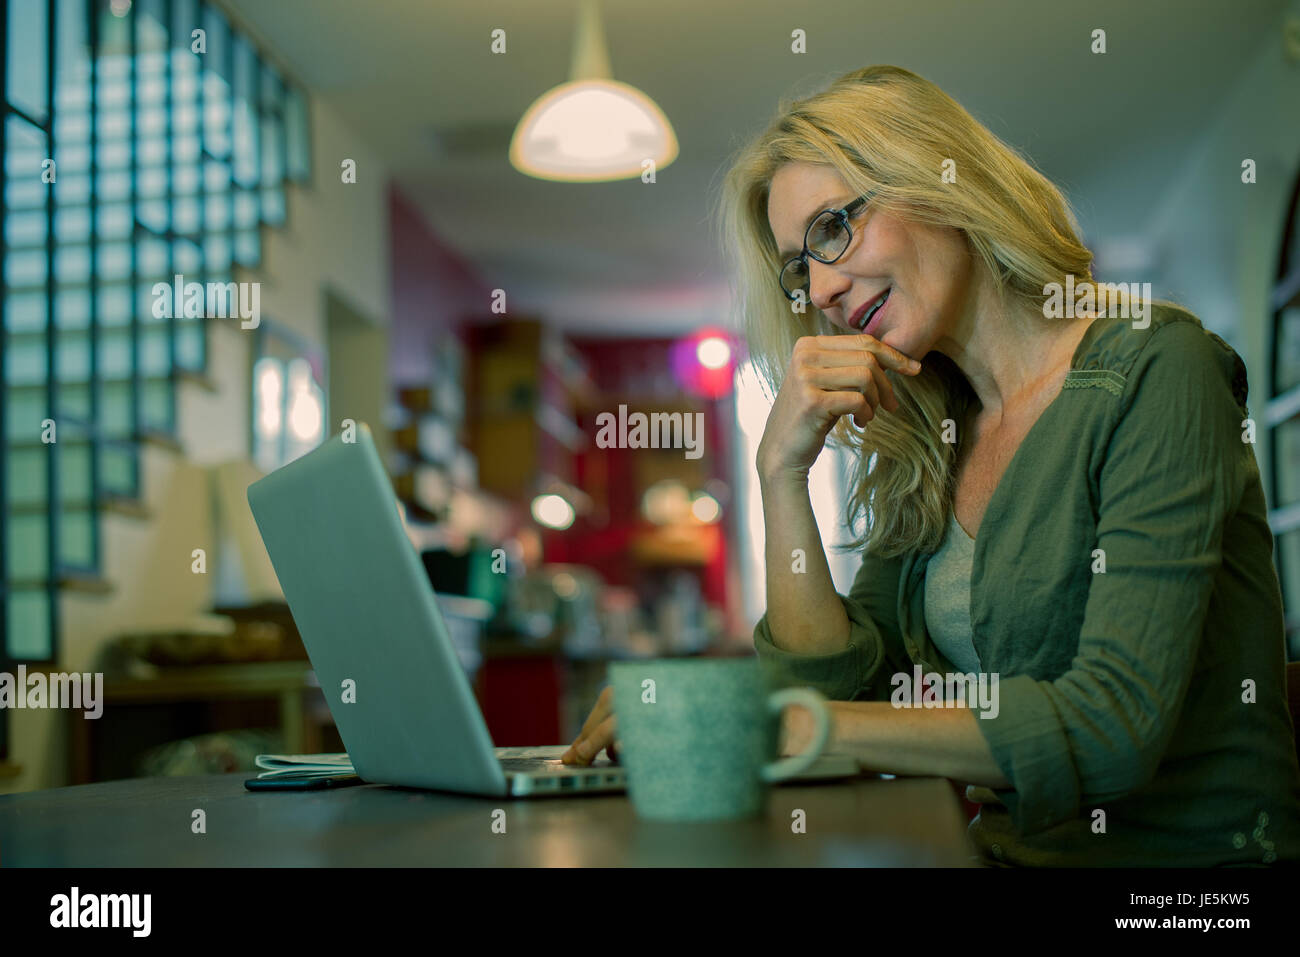 Woman using laptop computer at home Photo Stock